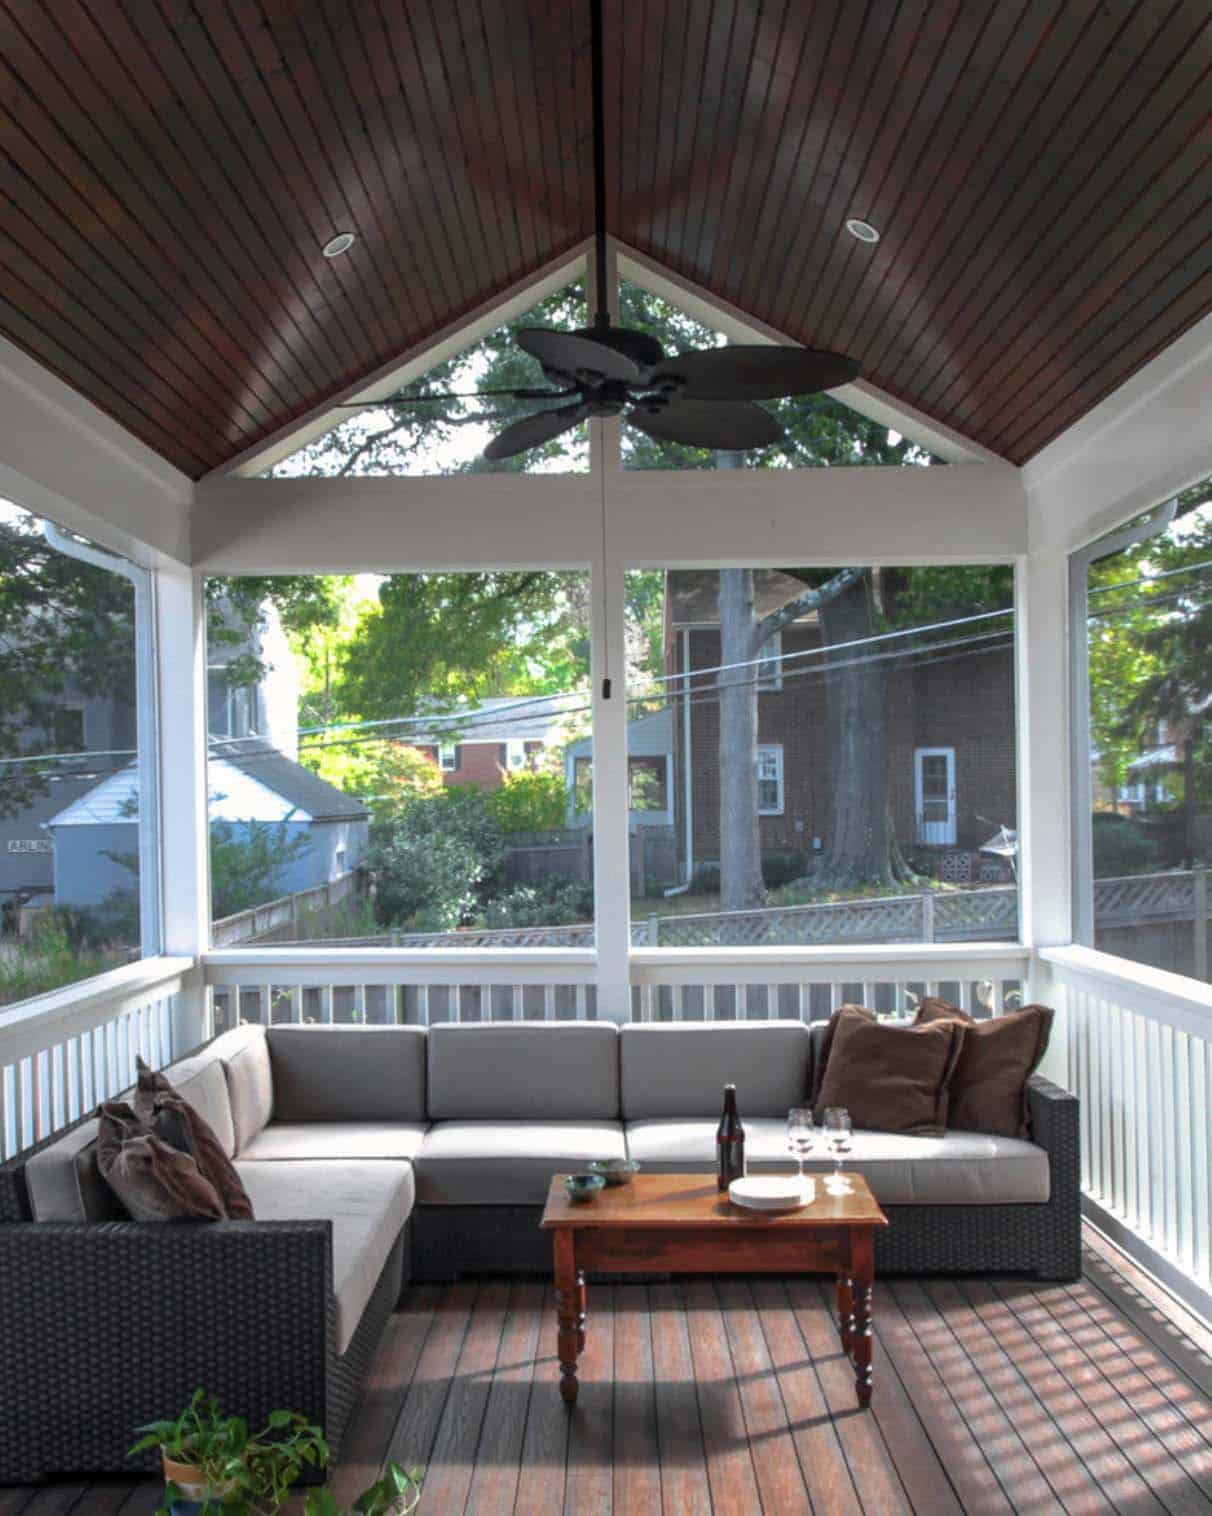 screened porch design ideas 24 1 kindesign - Porch Ideas